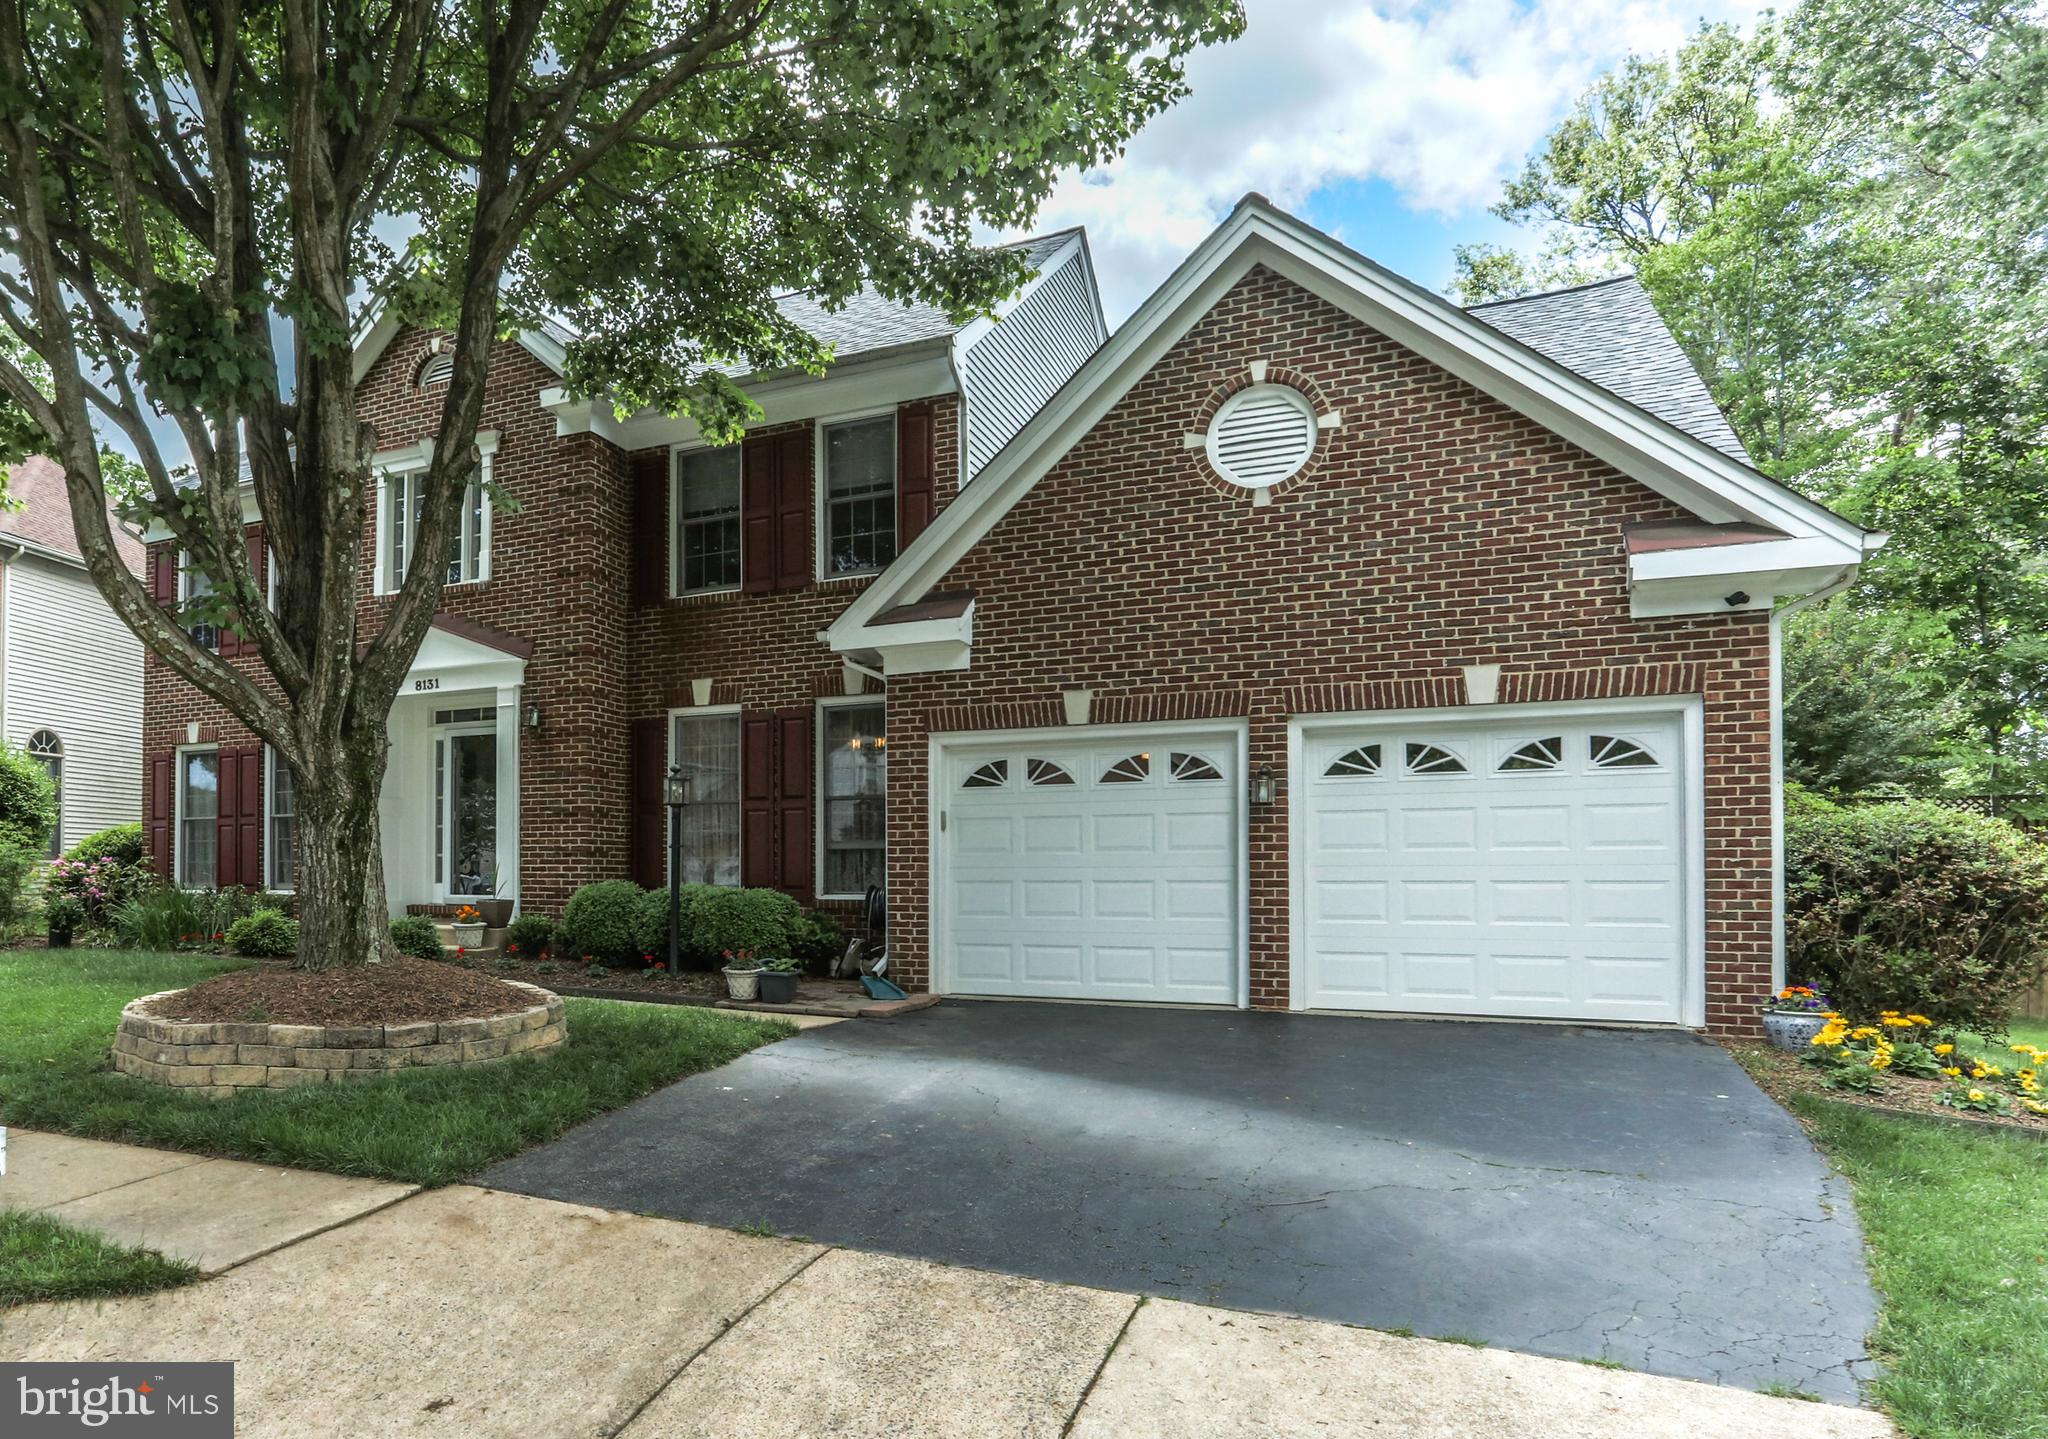 8131 RIDGE CREEK WAY, SPRINGFIELD, VA 22153